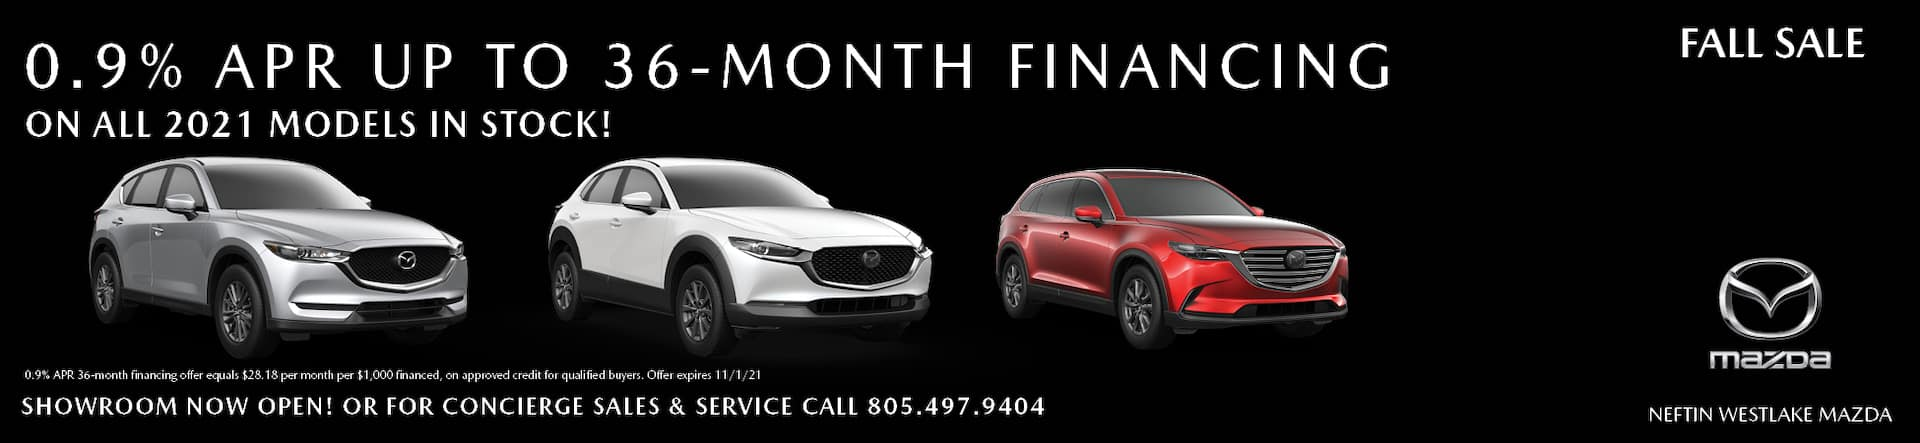 0.9% APR Financing up to 36 months